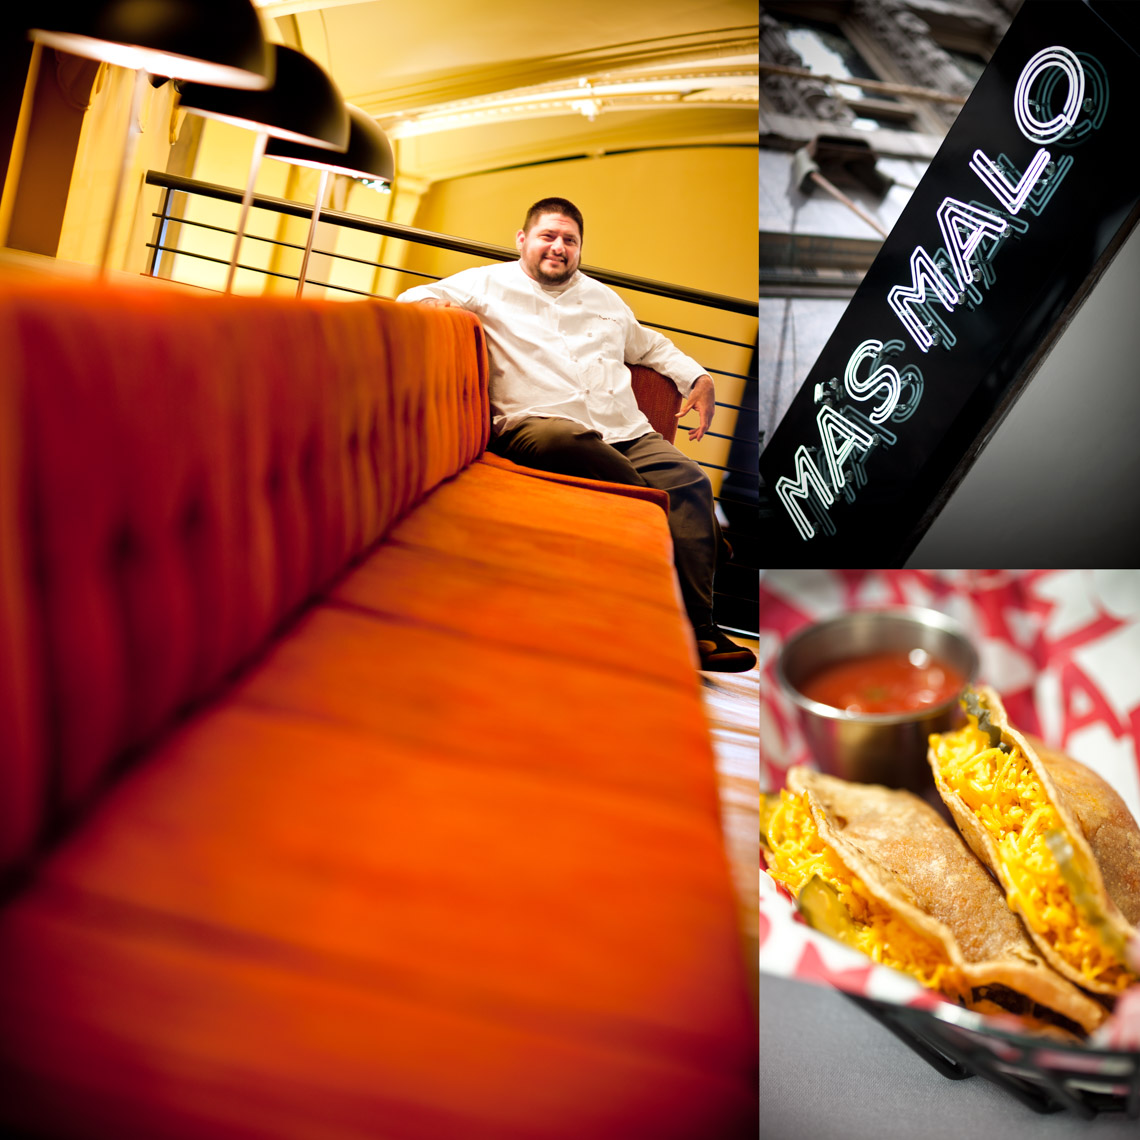 Los Angeles Photographer | Dana Hursey Photography | Top Chef Photography | Robert Luna - Mas Malo